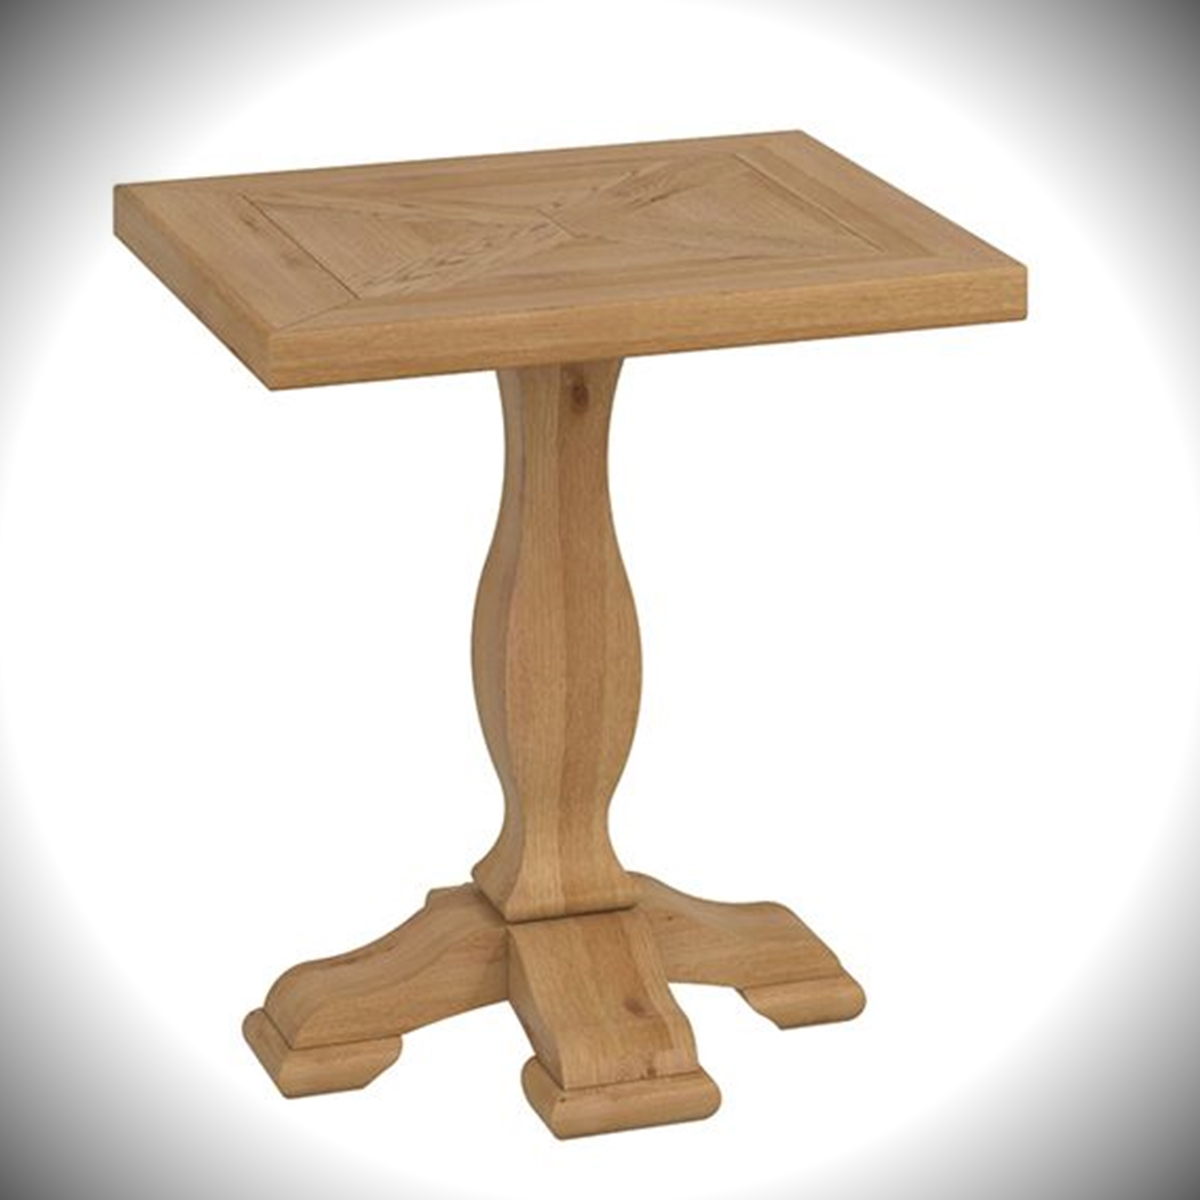 Belgrave Lamp Table - Rustic Oak